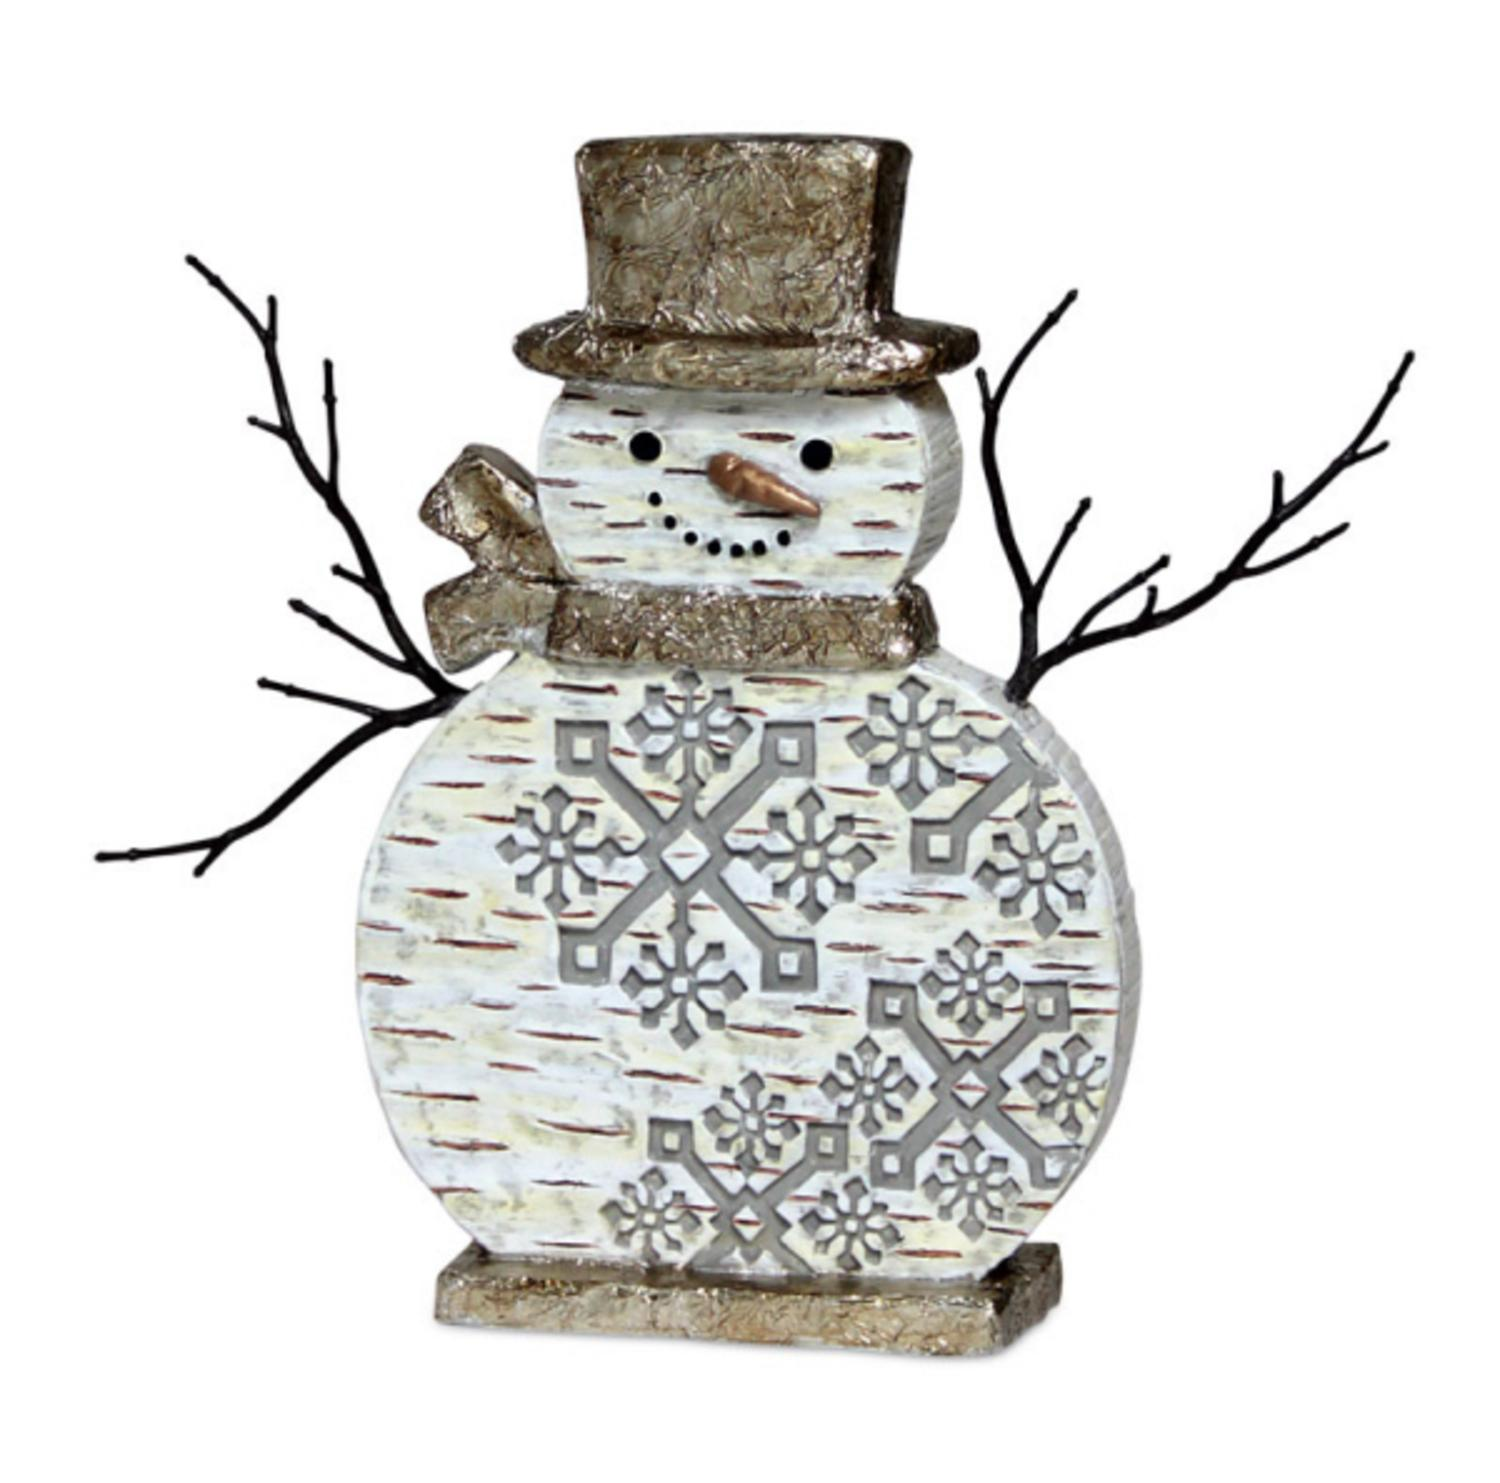 "10"" Festive Birch Bark Snowman Adorned with Snowflakes Christmas Table Top Decoration"